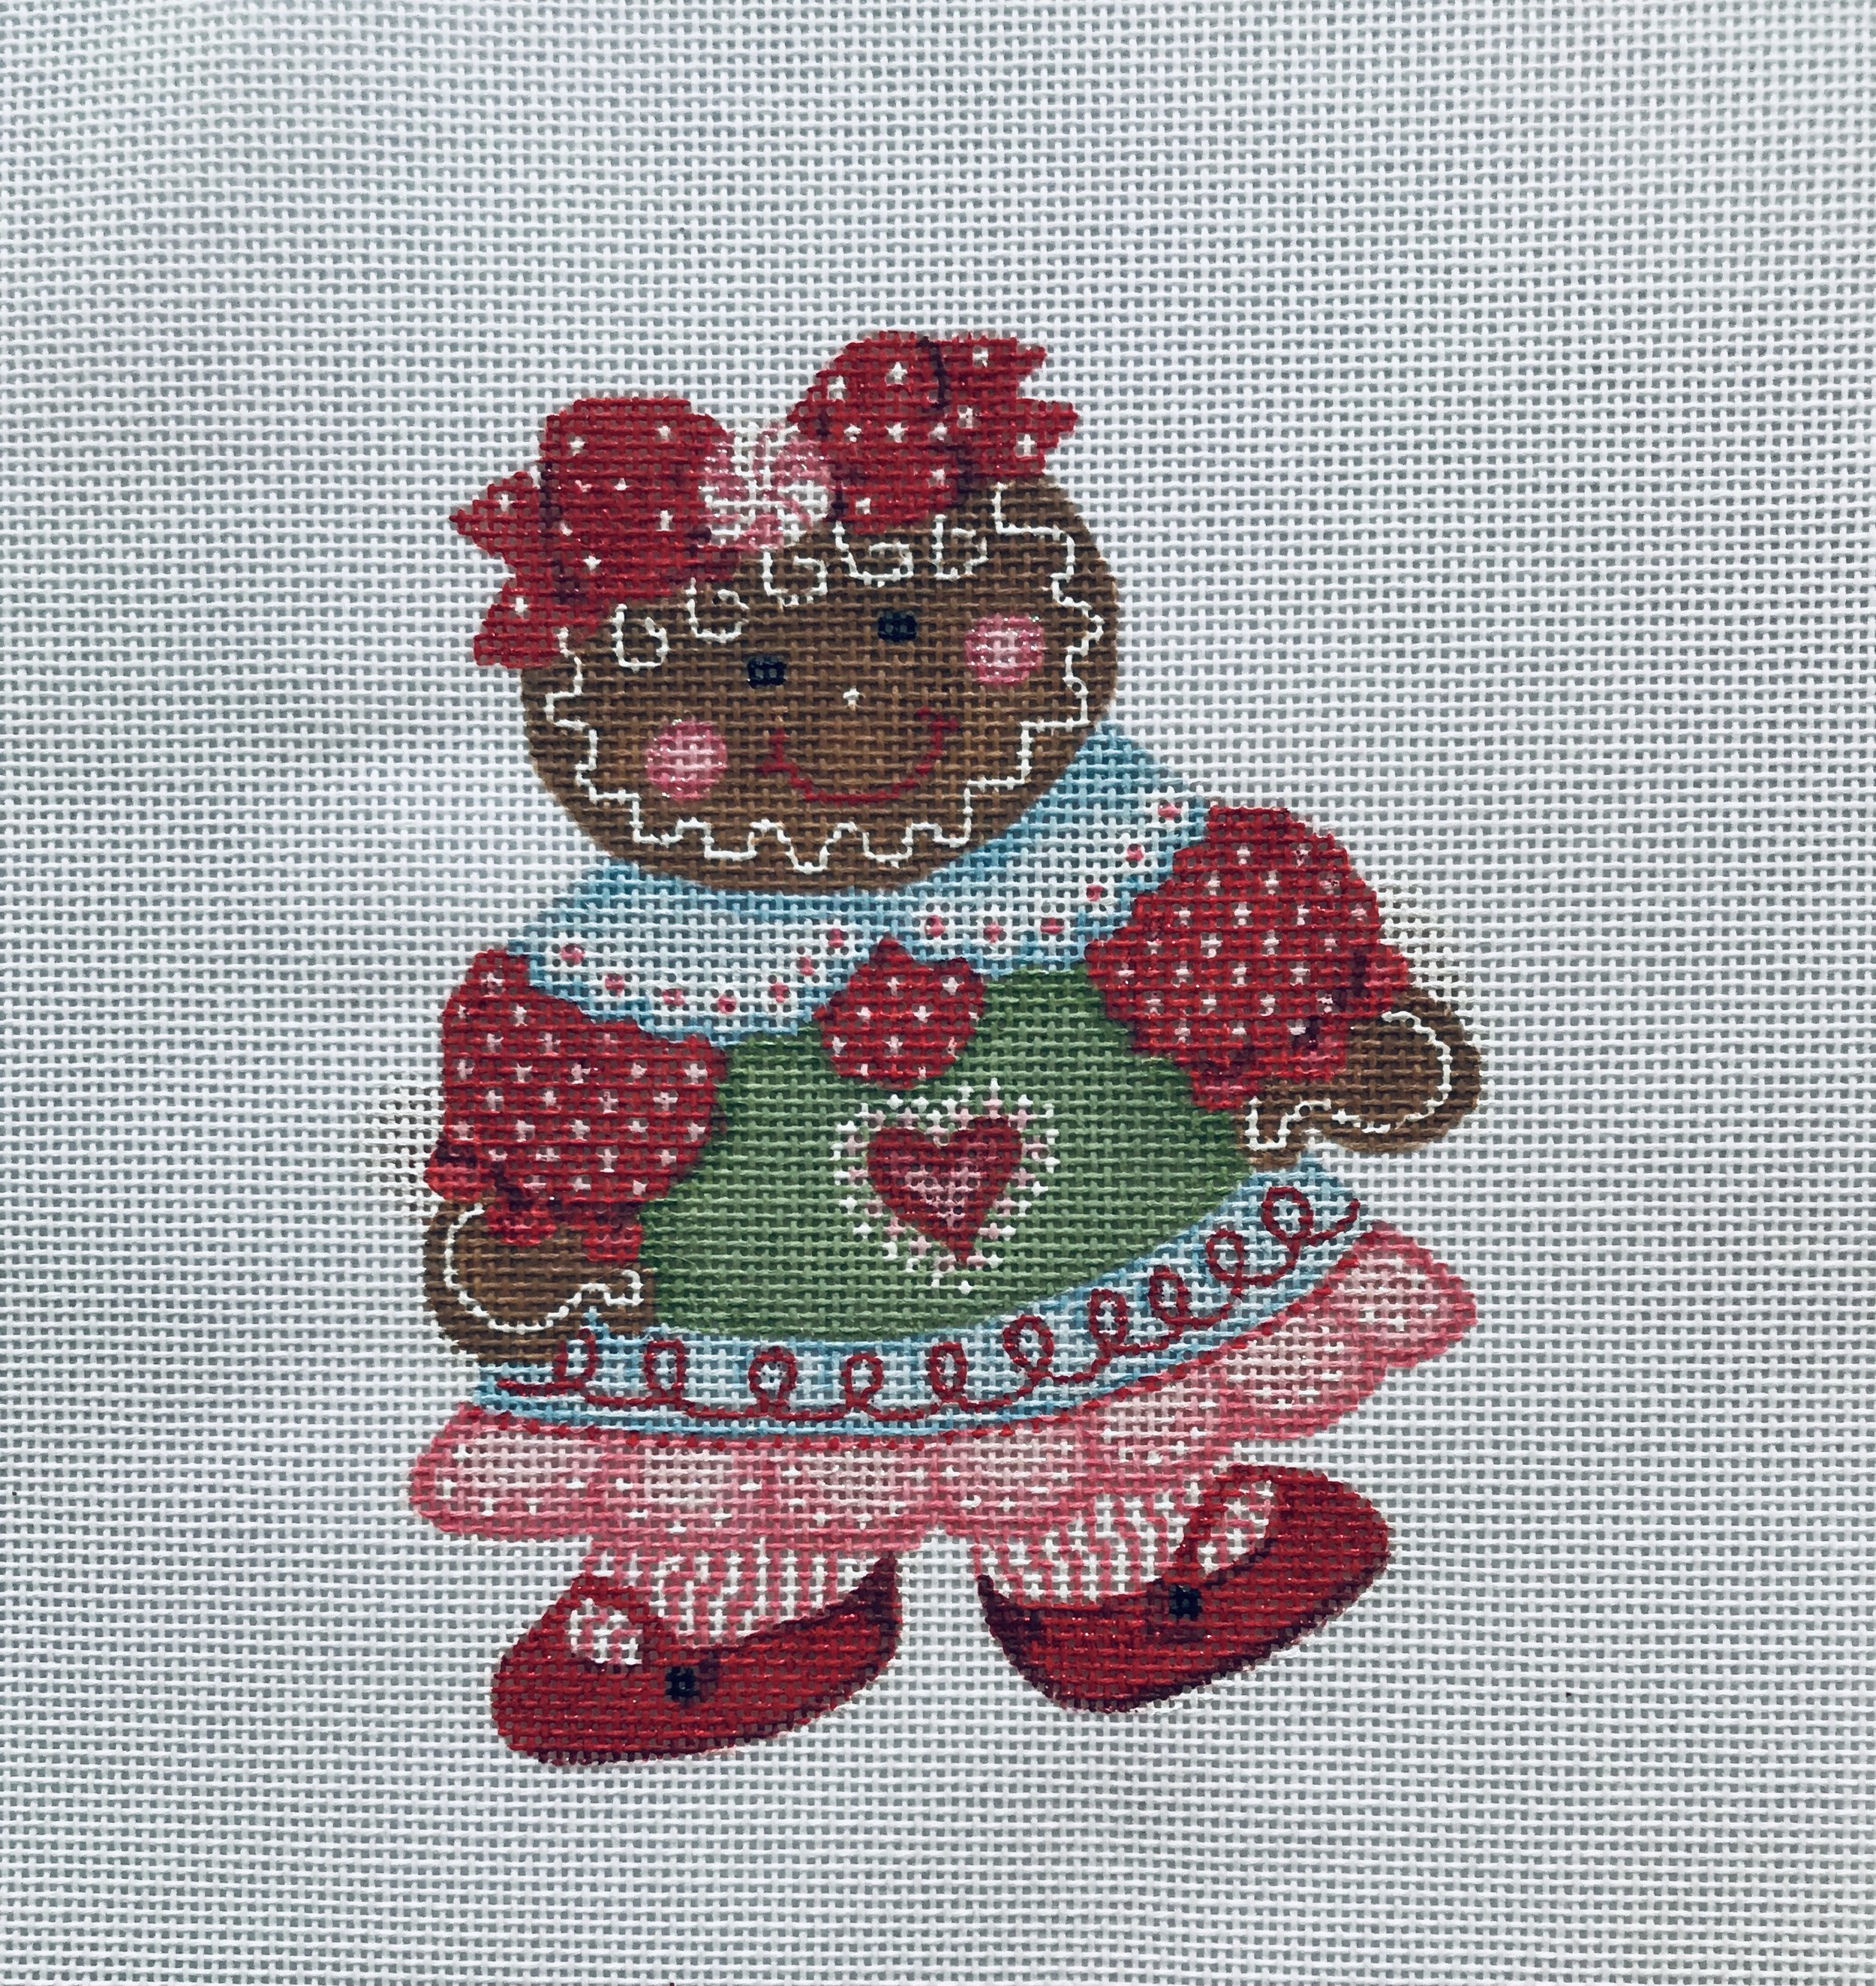 "The No-calorie Christmas Cookie - Ethyl TSG11   6"" x 6"" on 18 mesh"